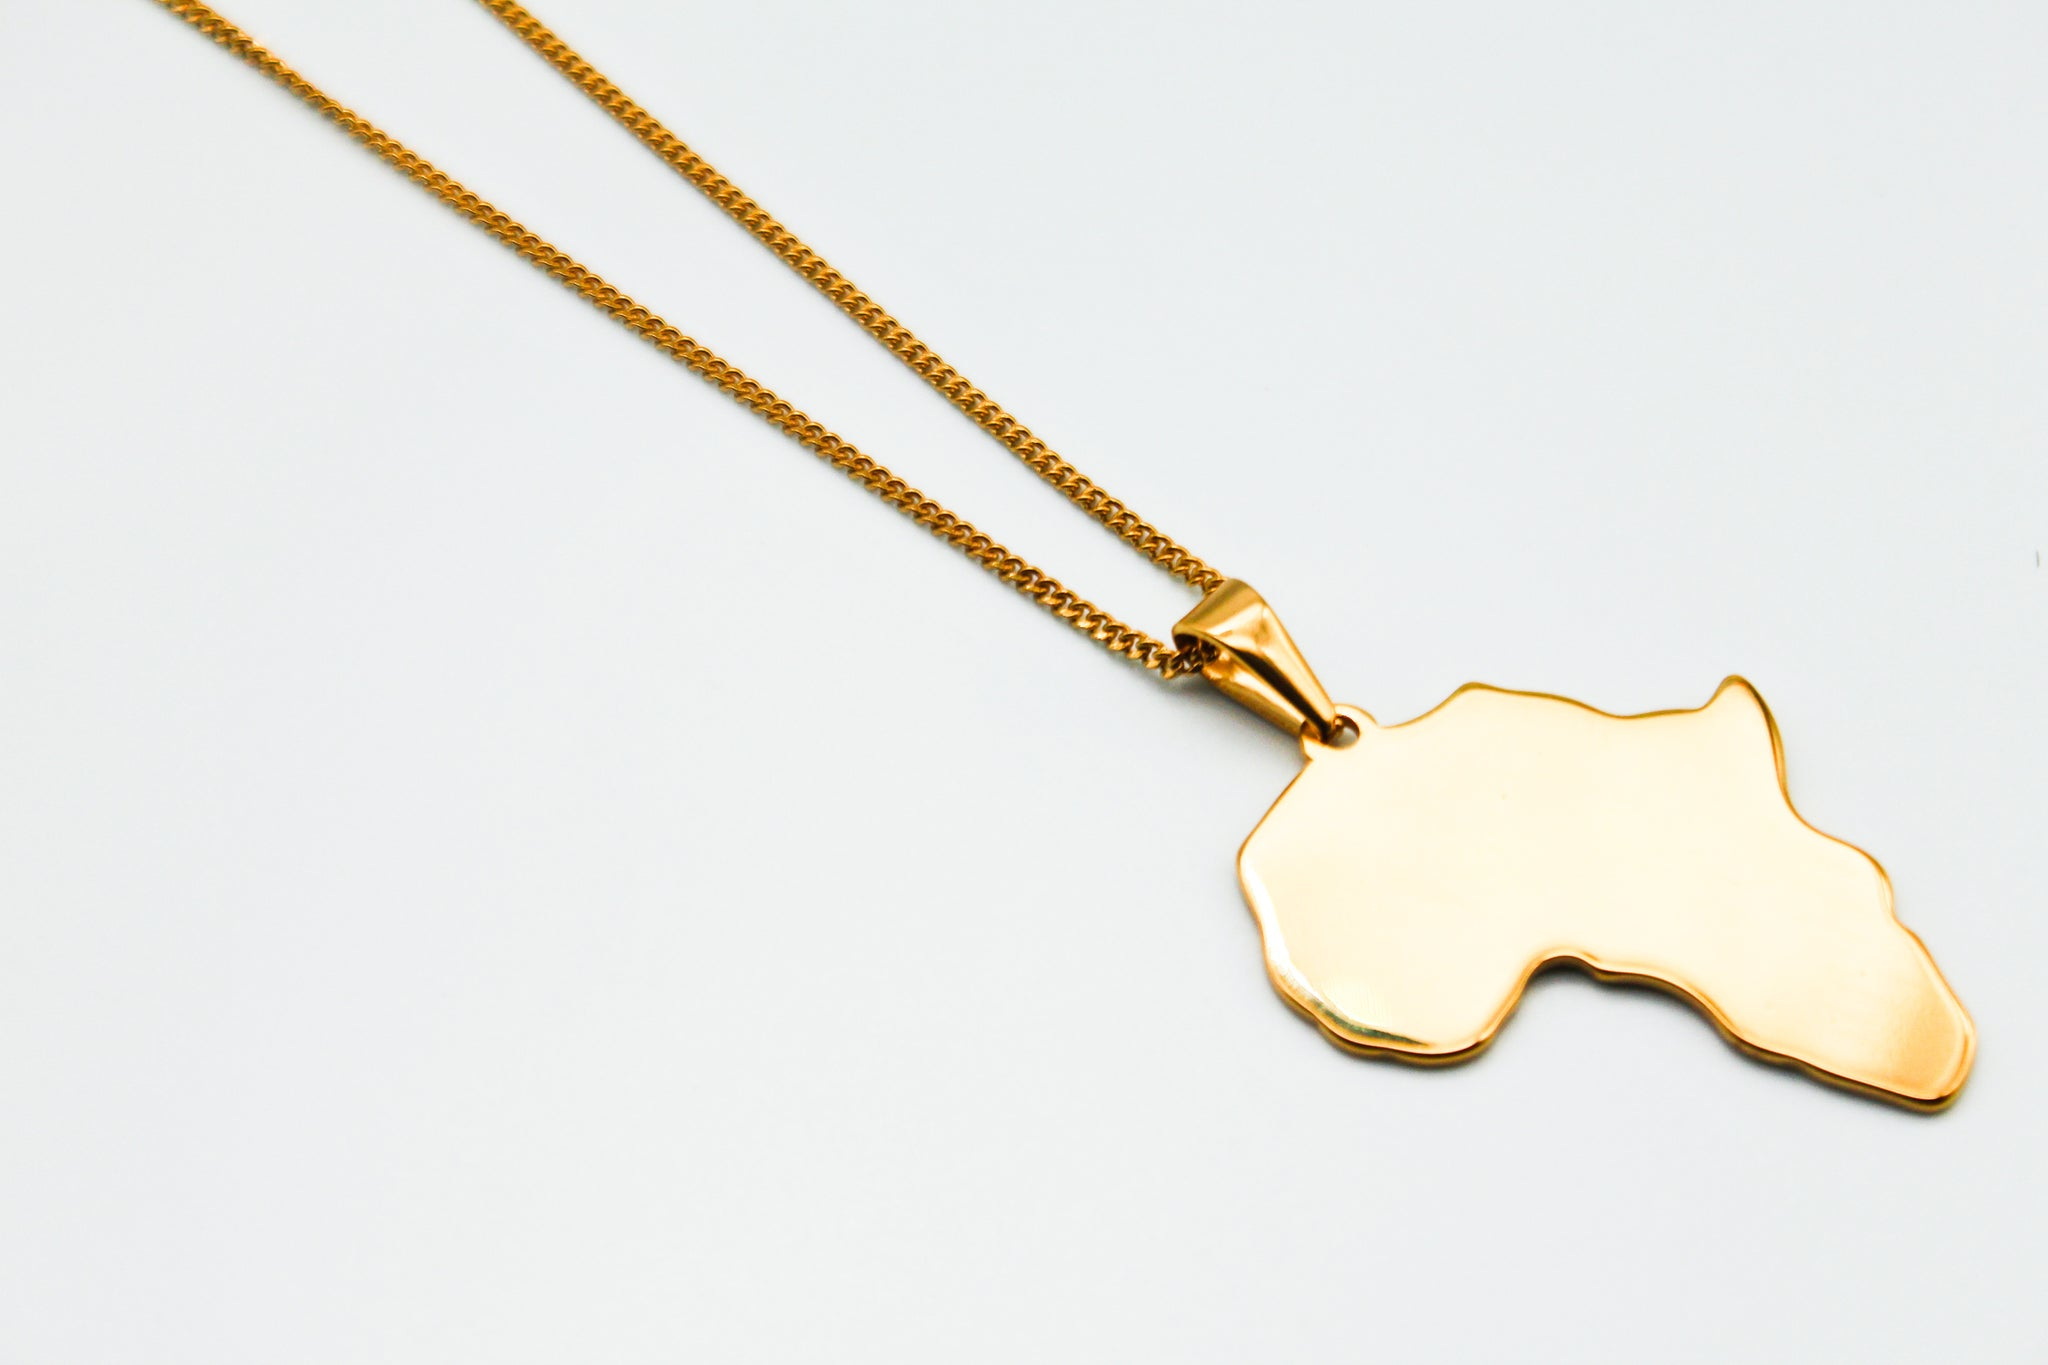 18k Gold Plated Africa Link Chain Necklace